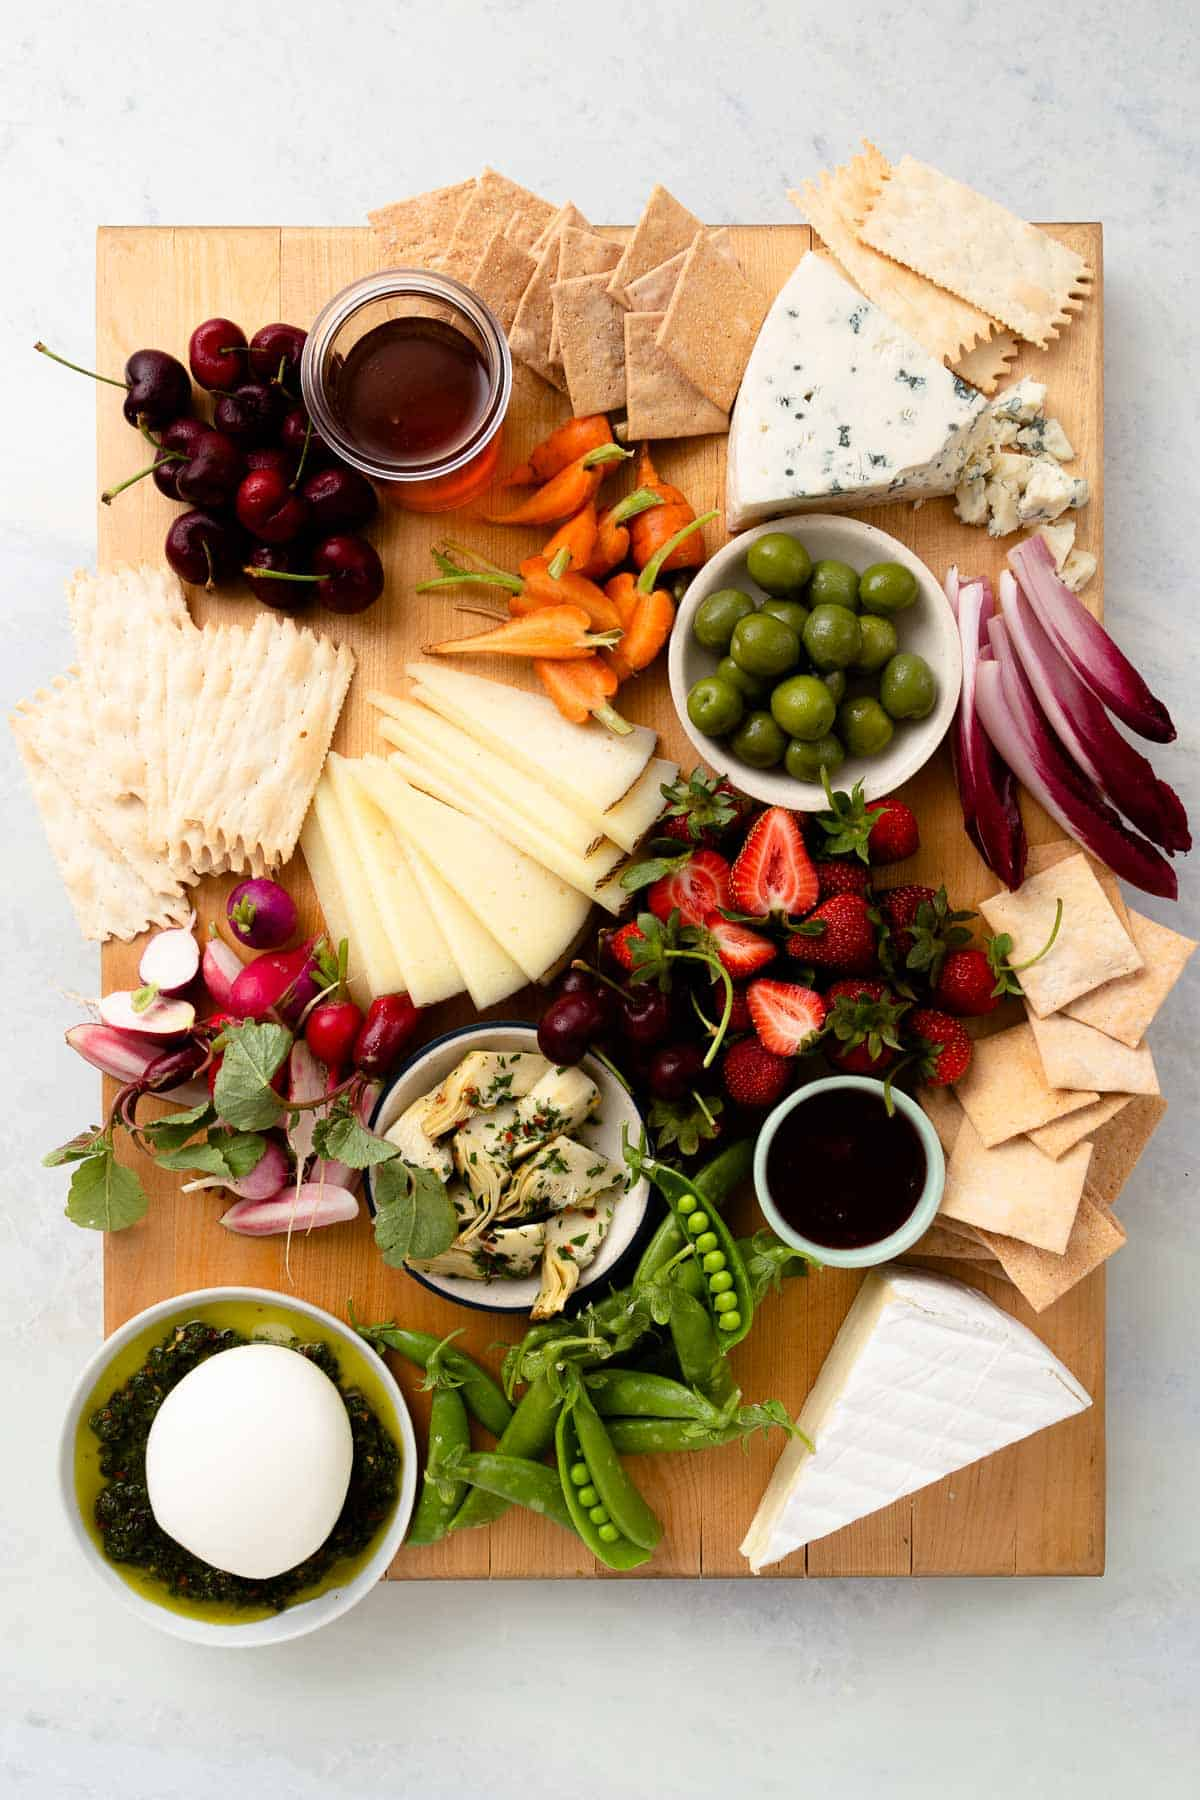 filling a large wood board with vegetables, crackers, green olives, jam, and white cheeses